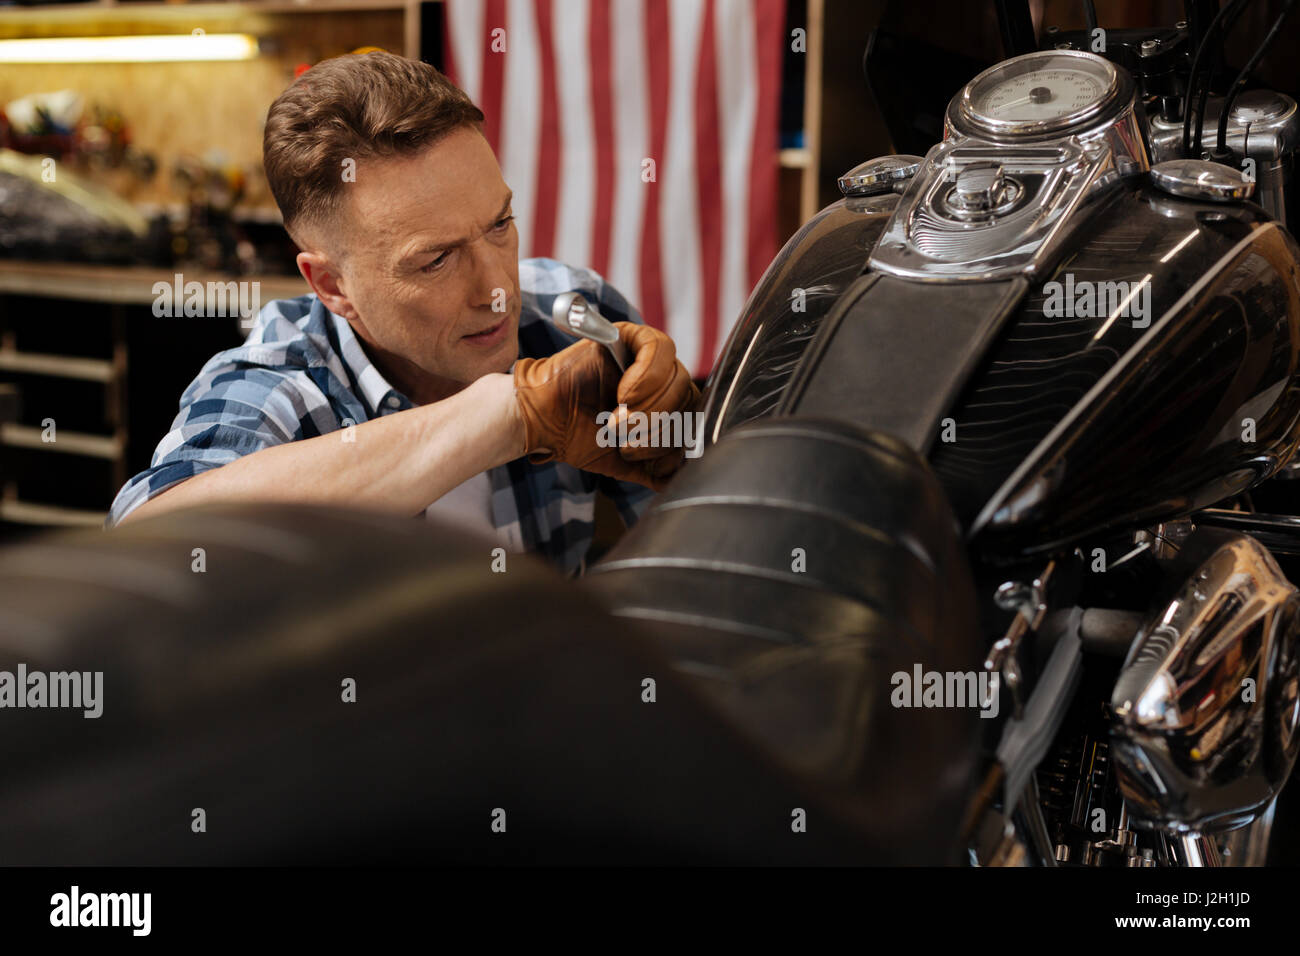 Precise good mechanic fixing the bolt - Stock Image